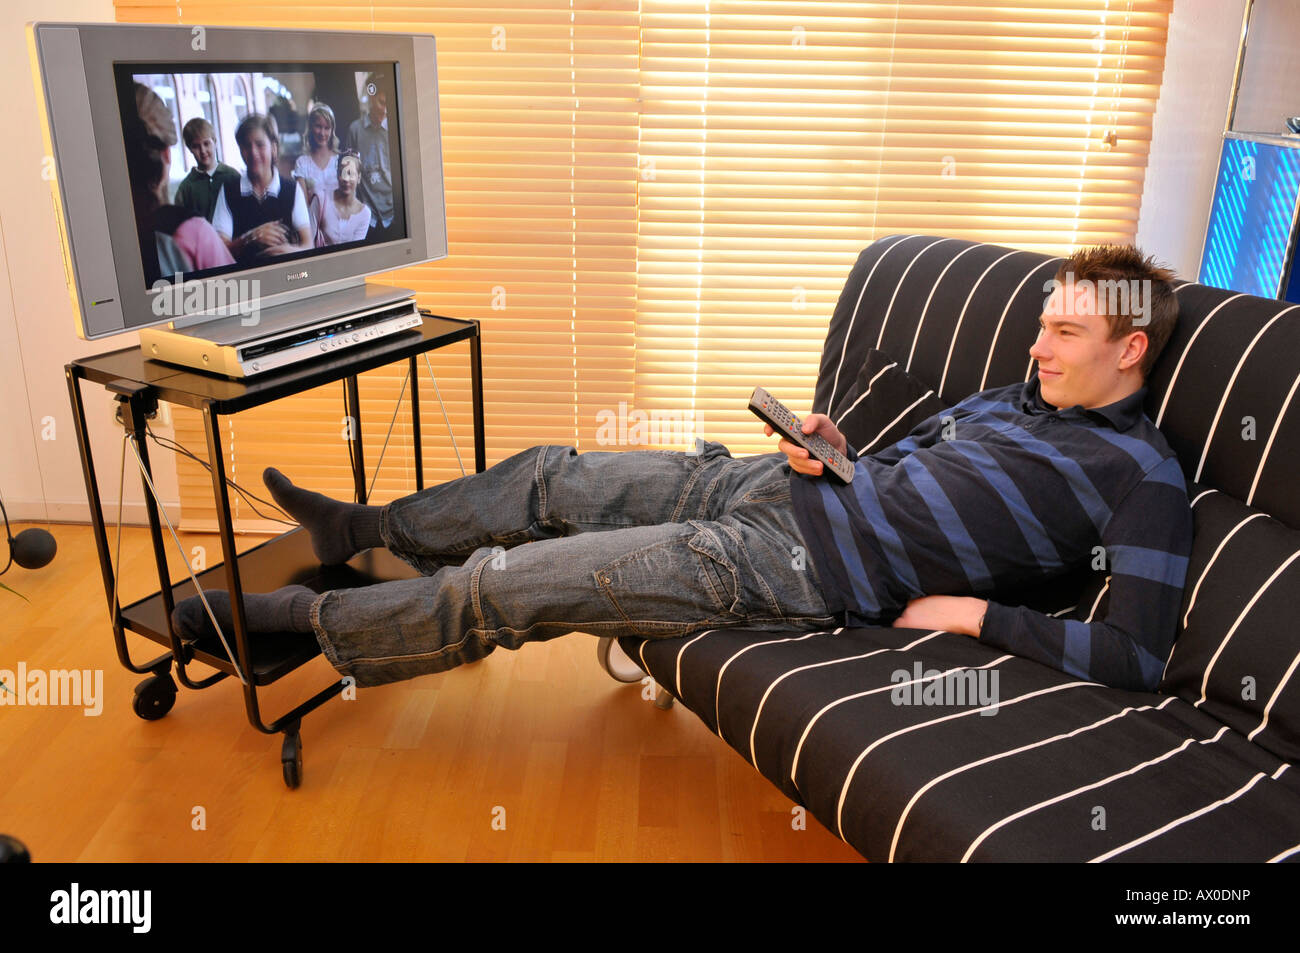 Couch Bequem Teenager Sitting On Couch Watching Tv Stock Photo